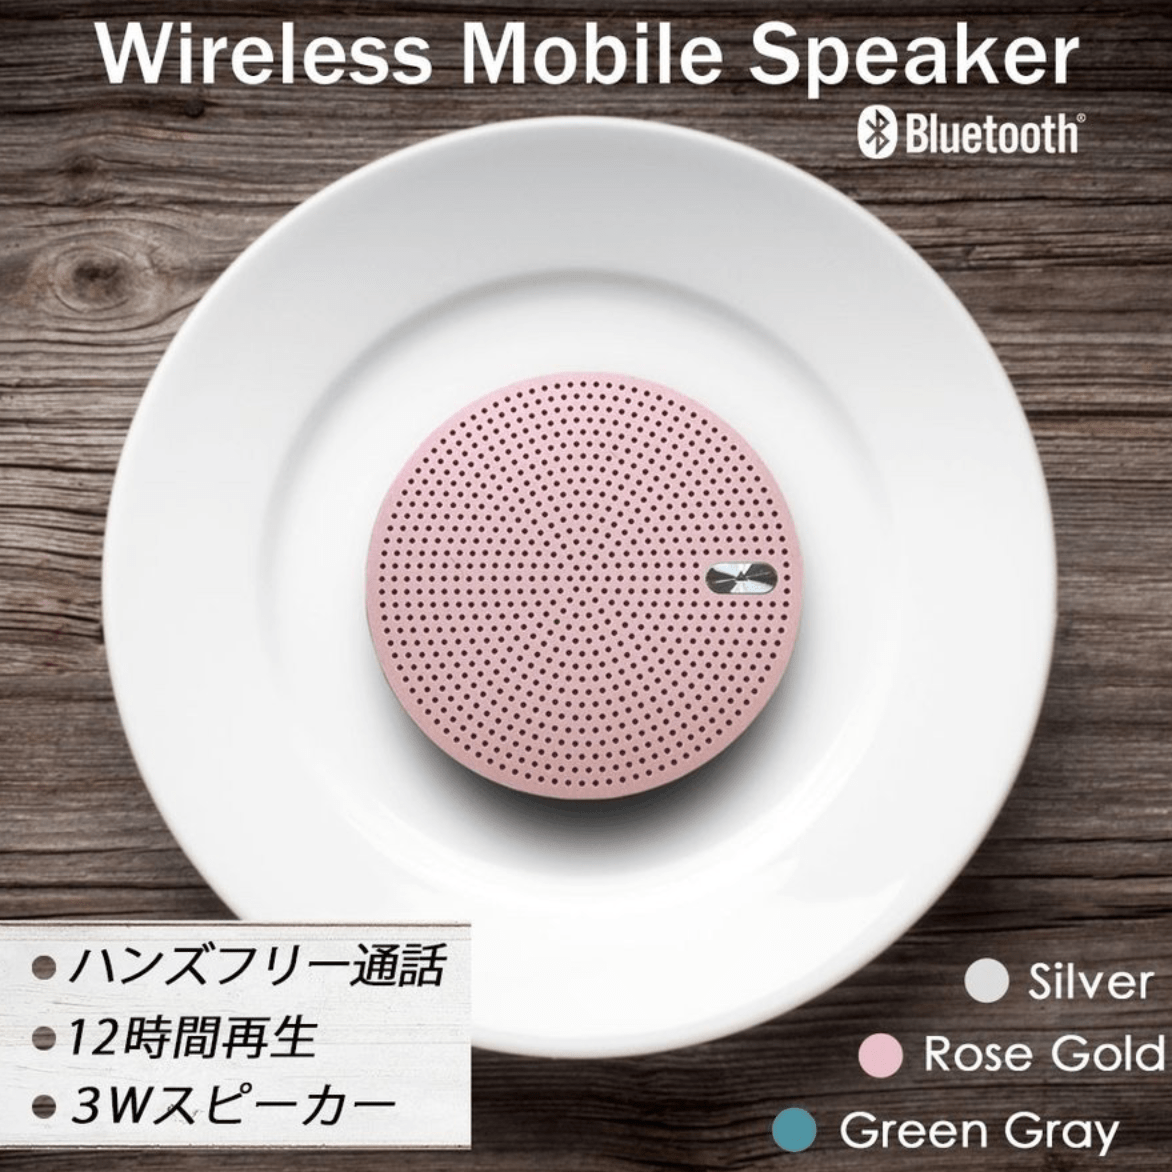 Wireless Mobile Speaker Bluetooth